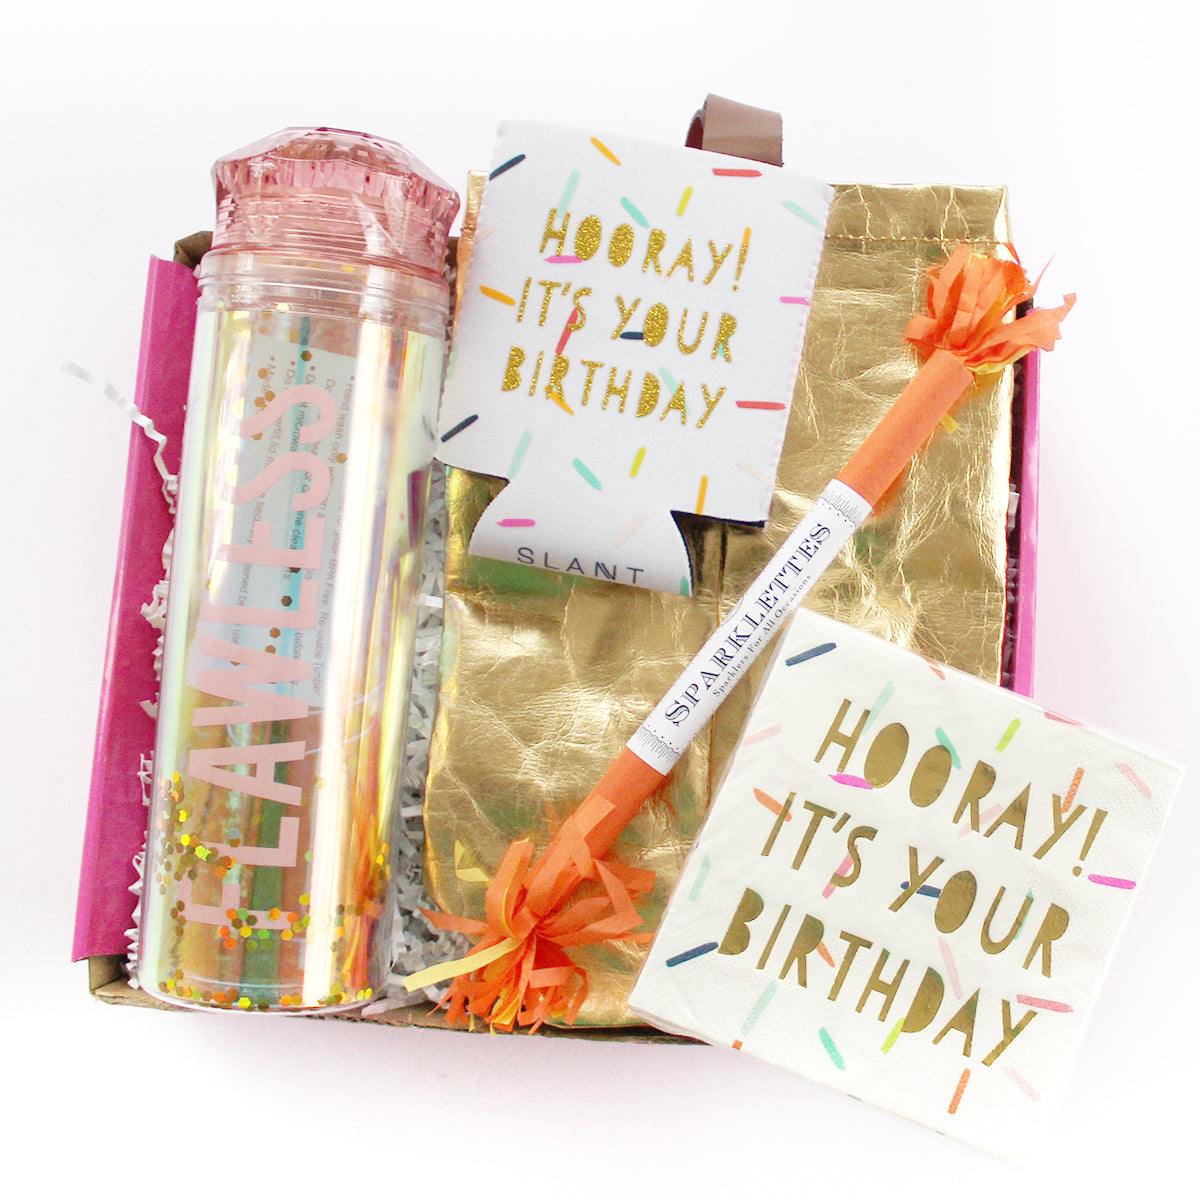 HOORay its you birthday box with flawless water bottle, doozie, can cover, sparkette, napkins and gold wine tote